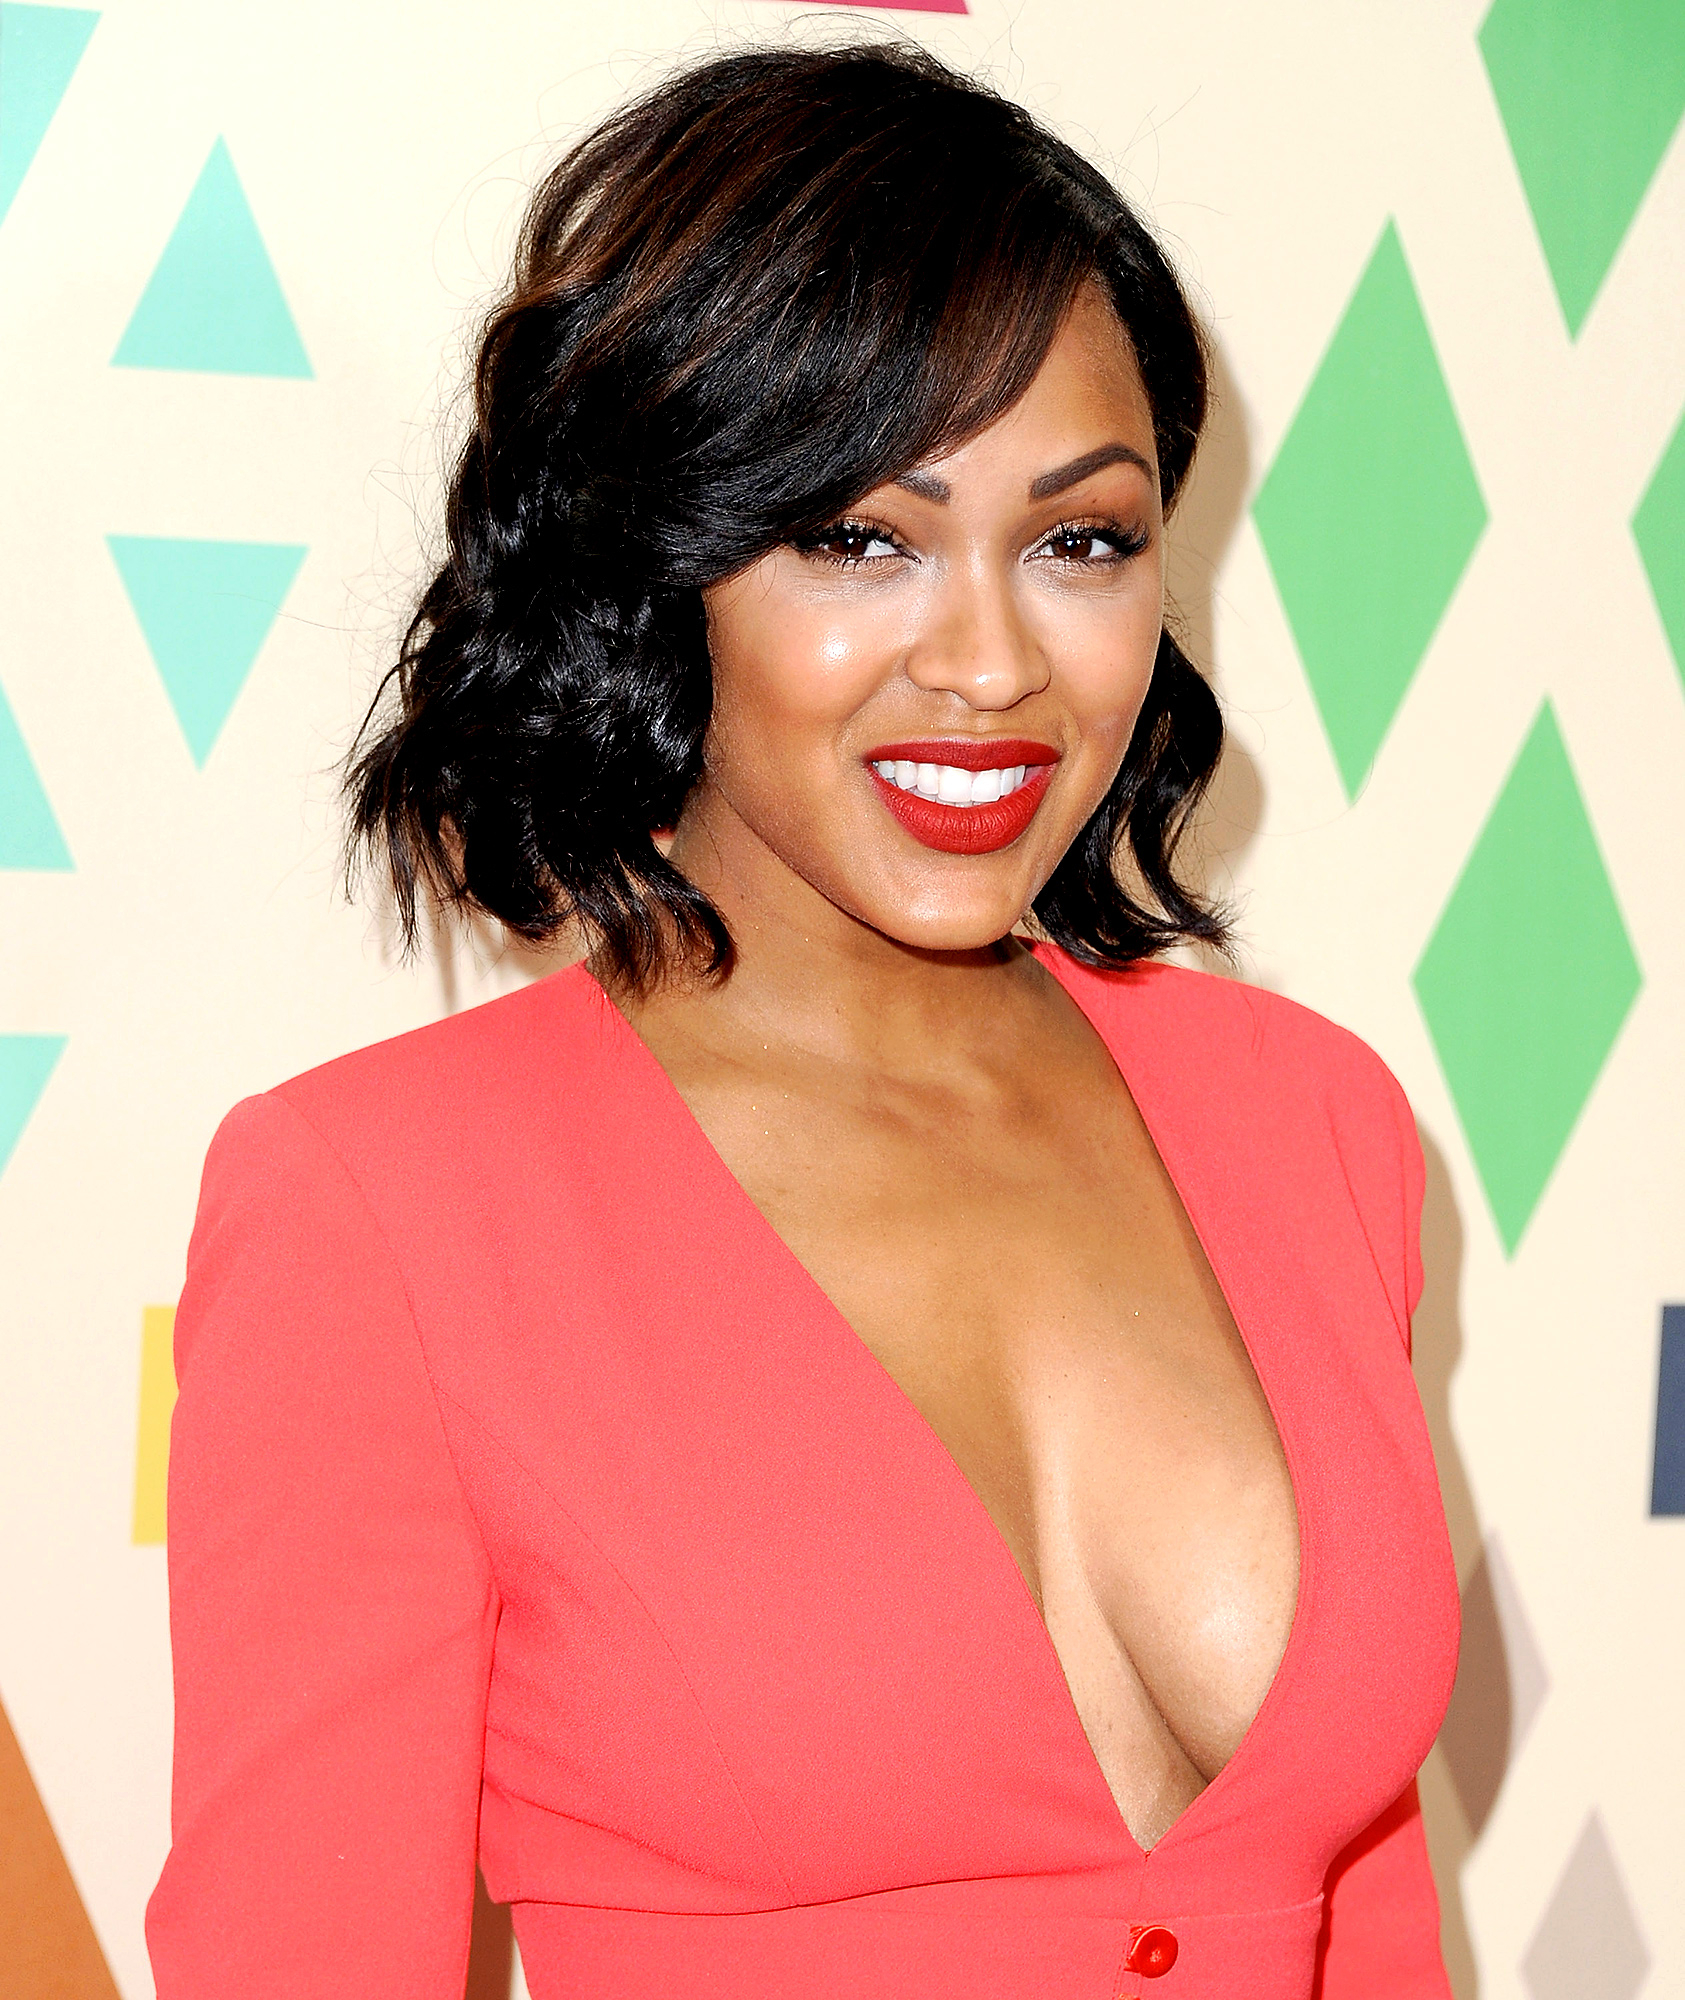 Meagan Good arrives at the 2015 Summer TCA Tour FOX All-Star Party at Soho House on August 6, 2015 in West Hollywood, California.